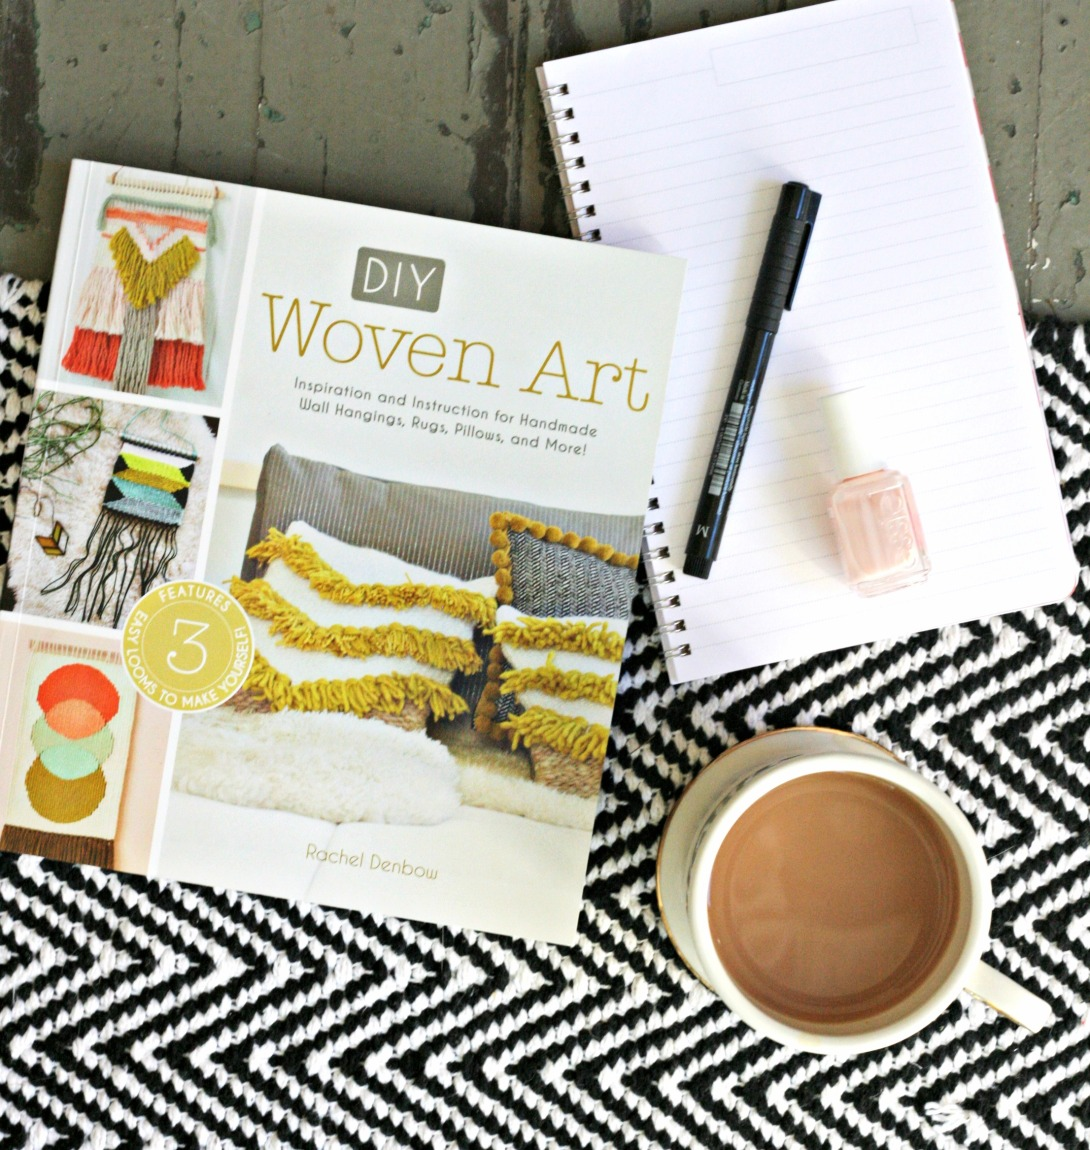 diy-woven-art-by-rachel-denbow-cover